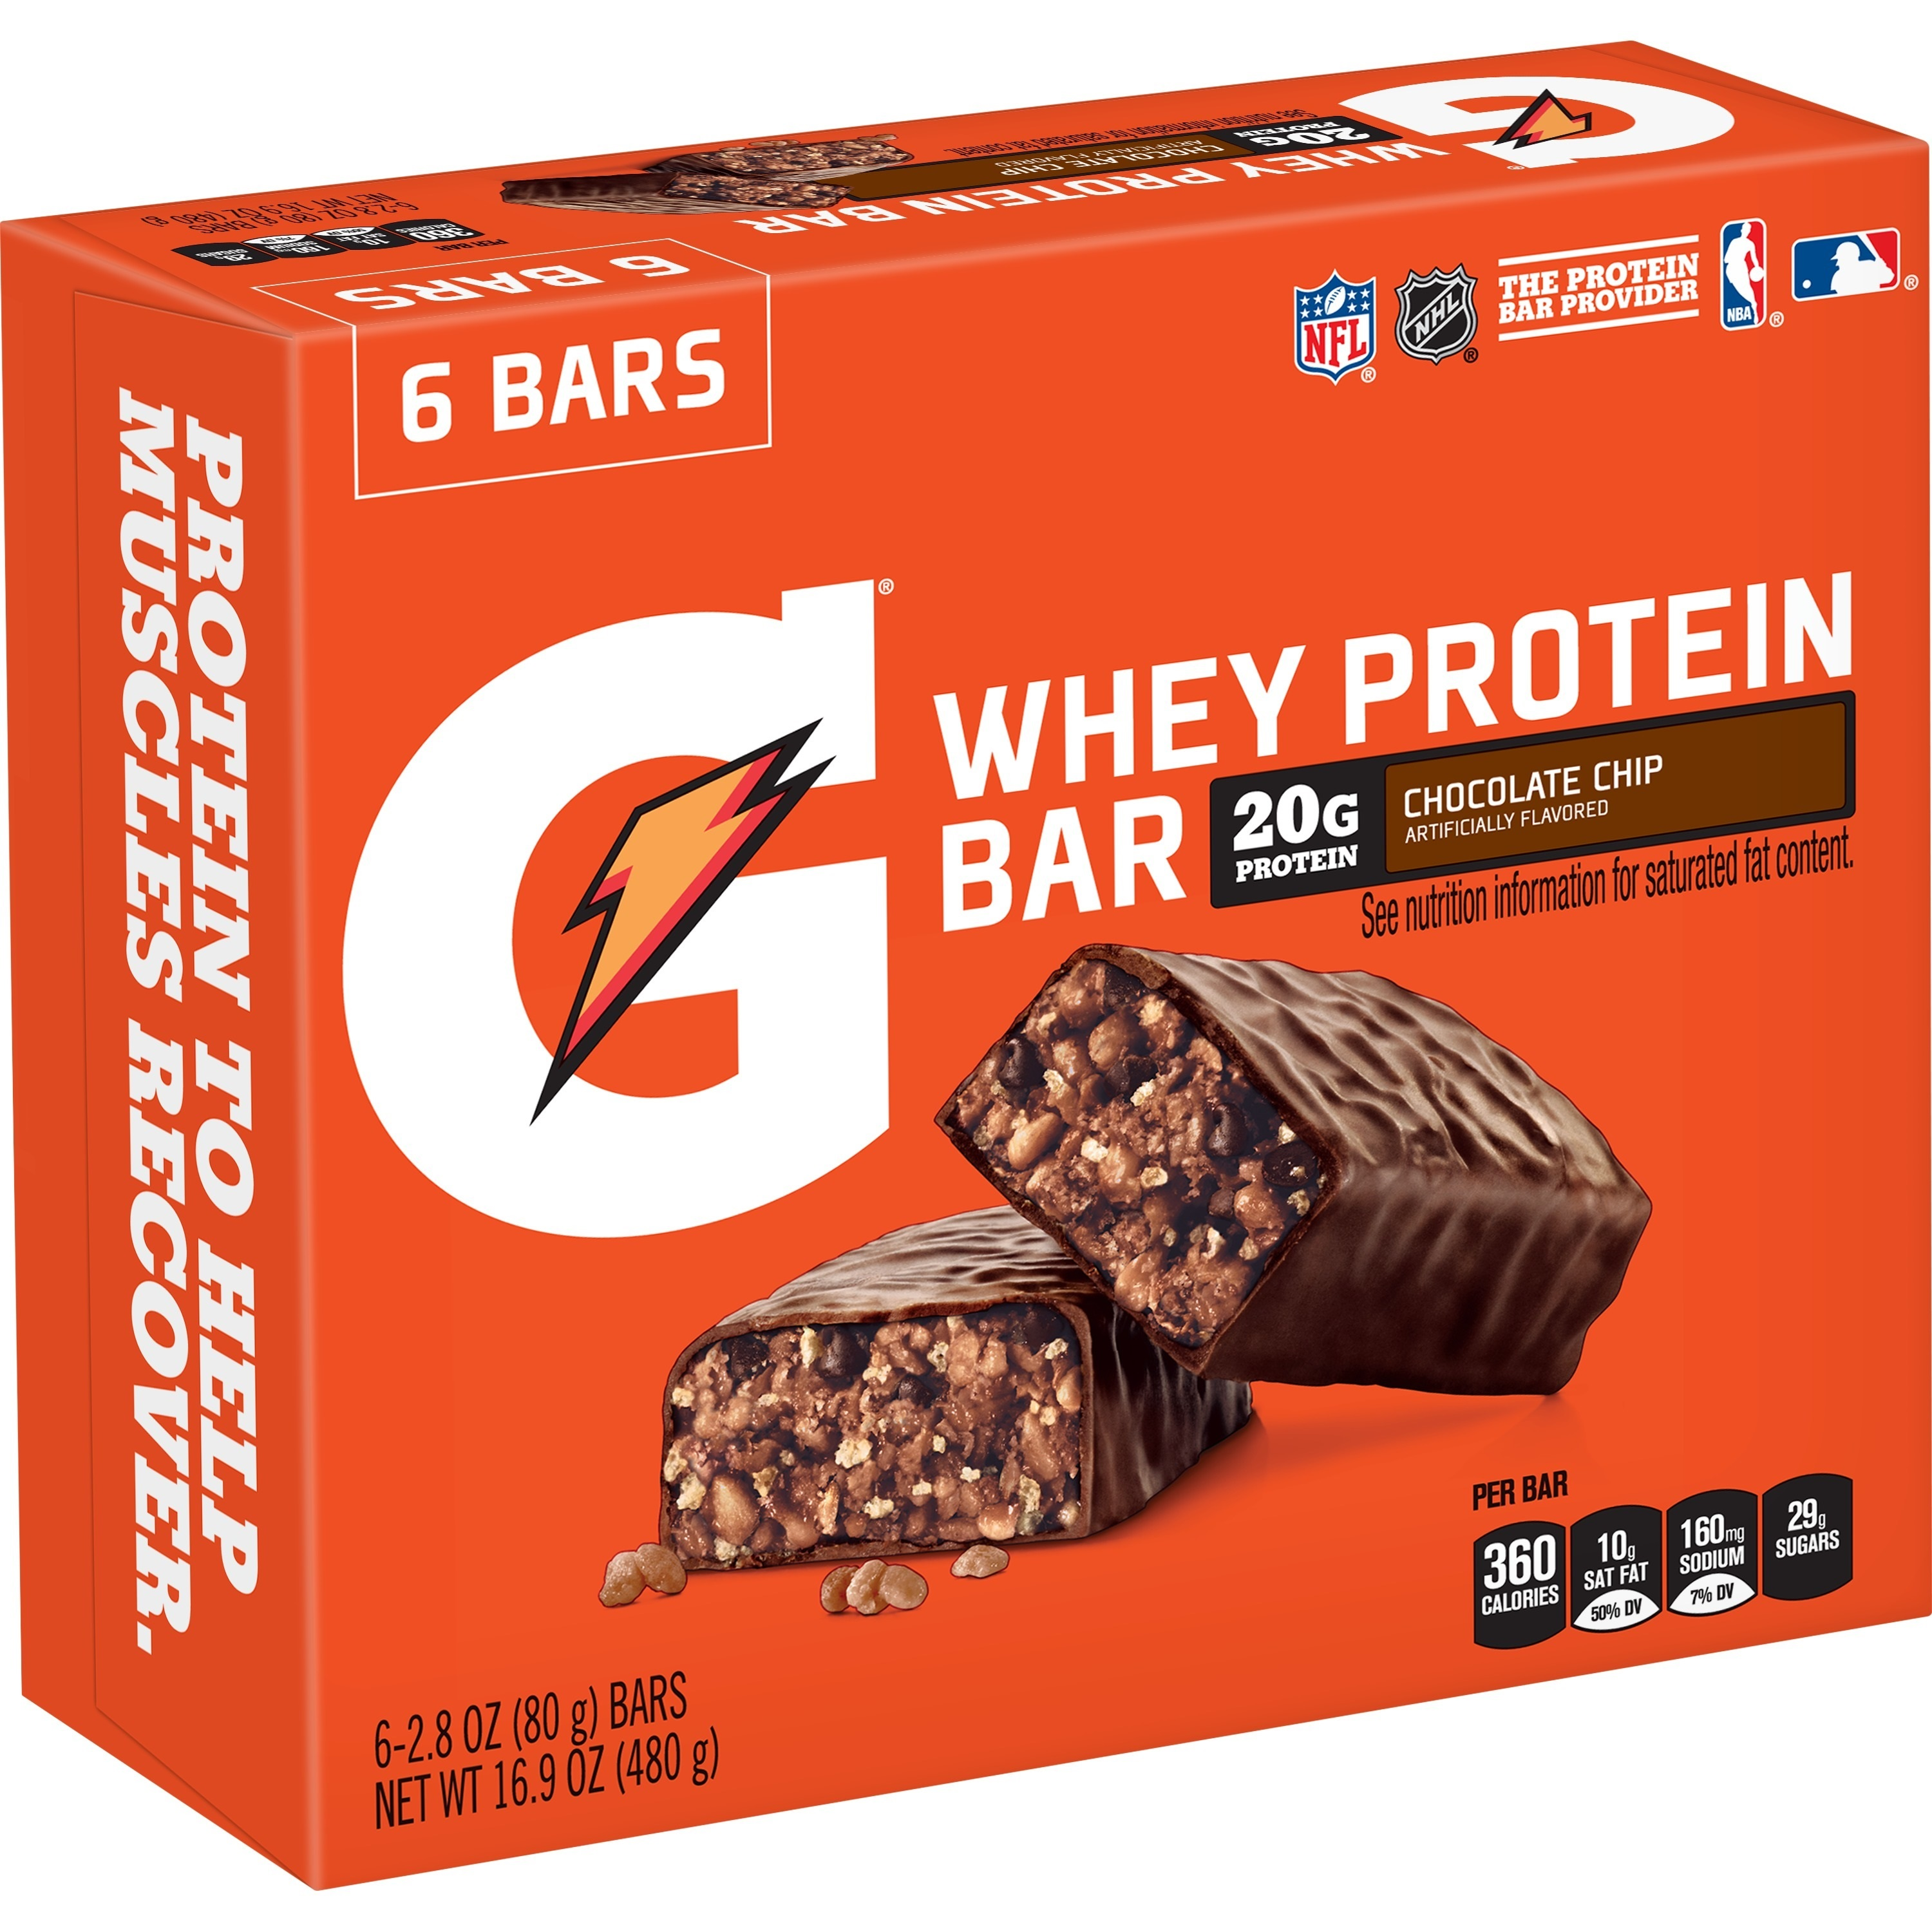 Gatorade Whey Protein Recover Bar, Chocolate Chip, 20g Protein, 6 Ct